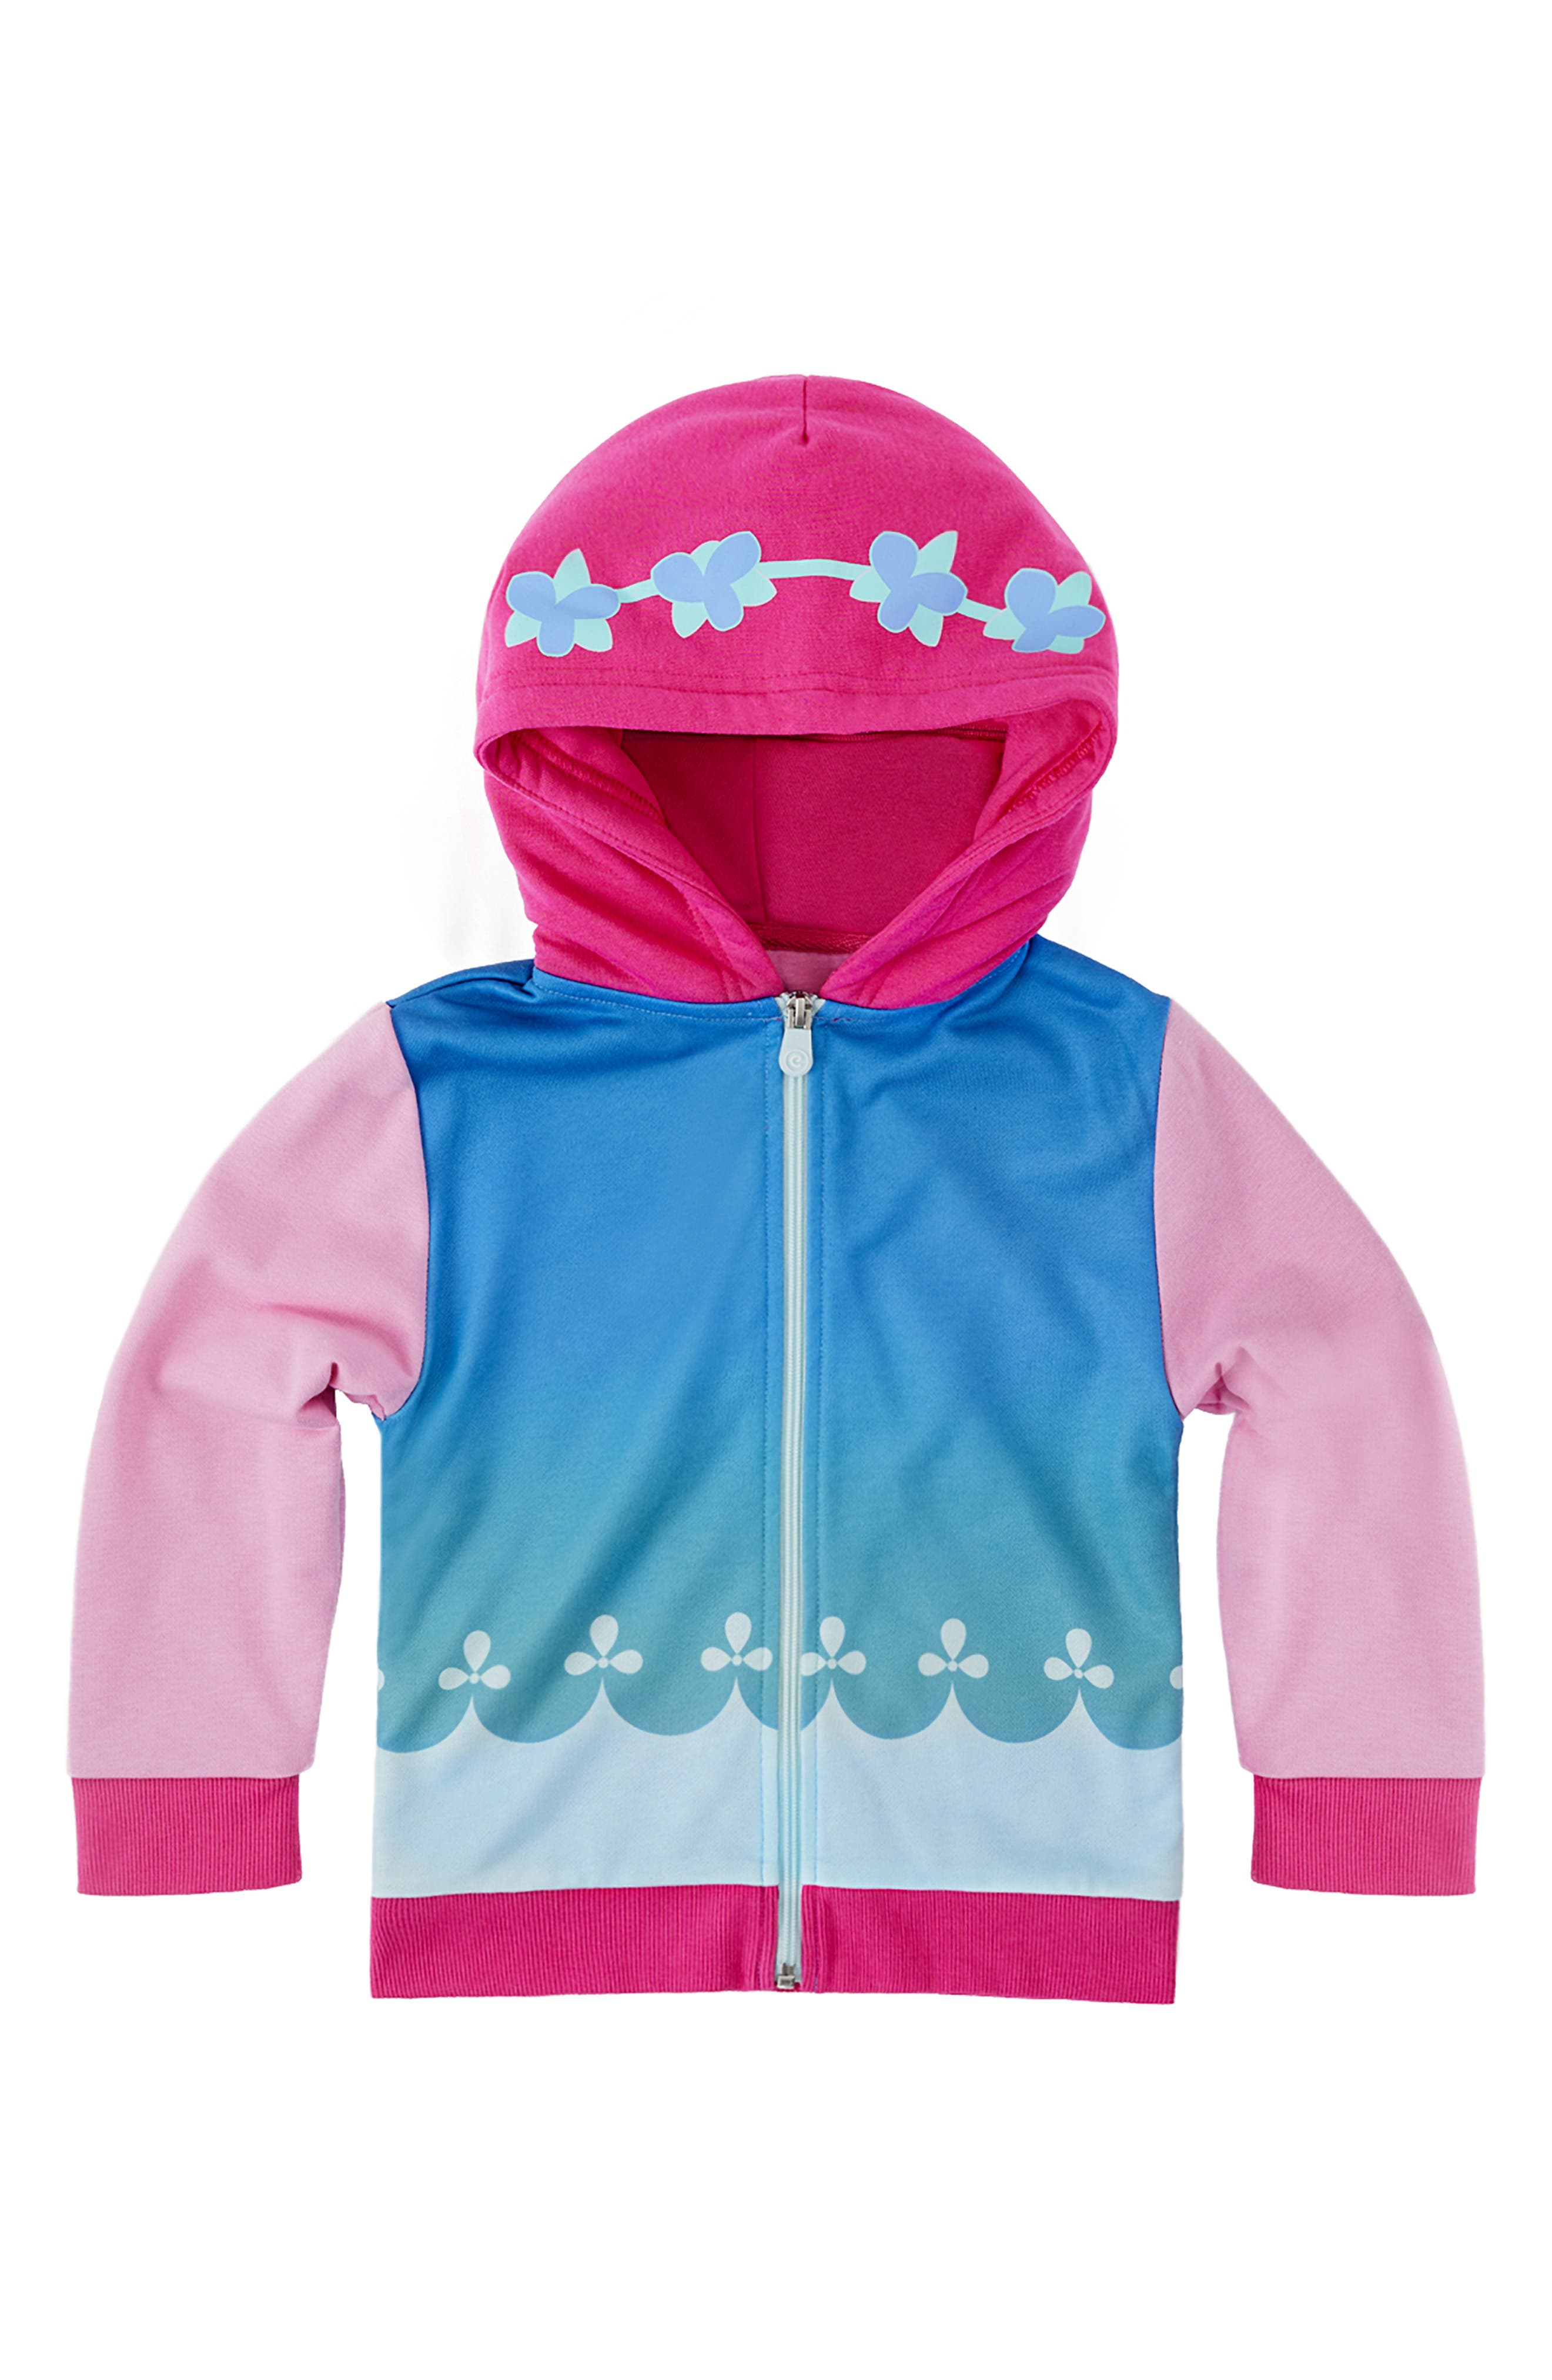 CUBCOATS, DreamWorks Trolls Poppy 2-in-1 Stuffed Animal Hoodie, Alternate thumbnail 7, color, PINK MIX